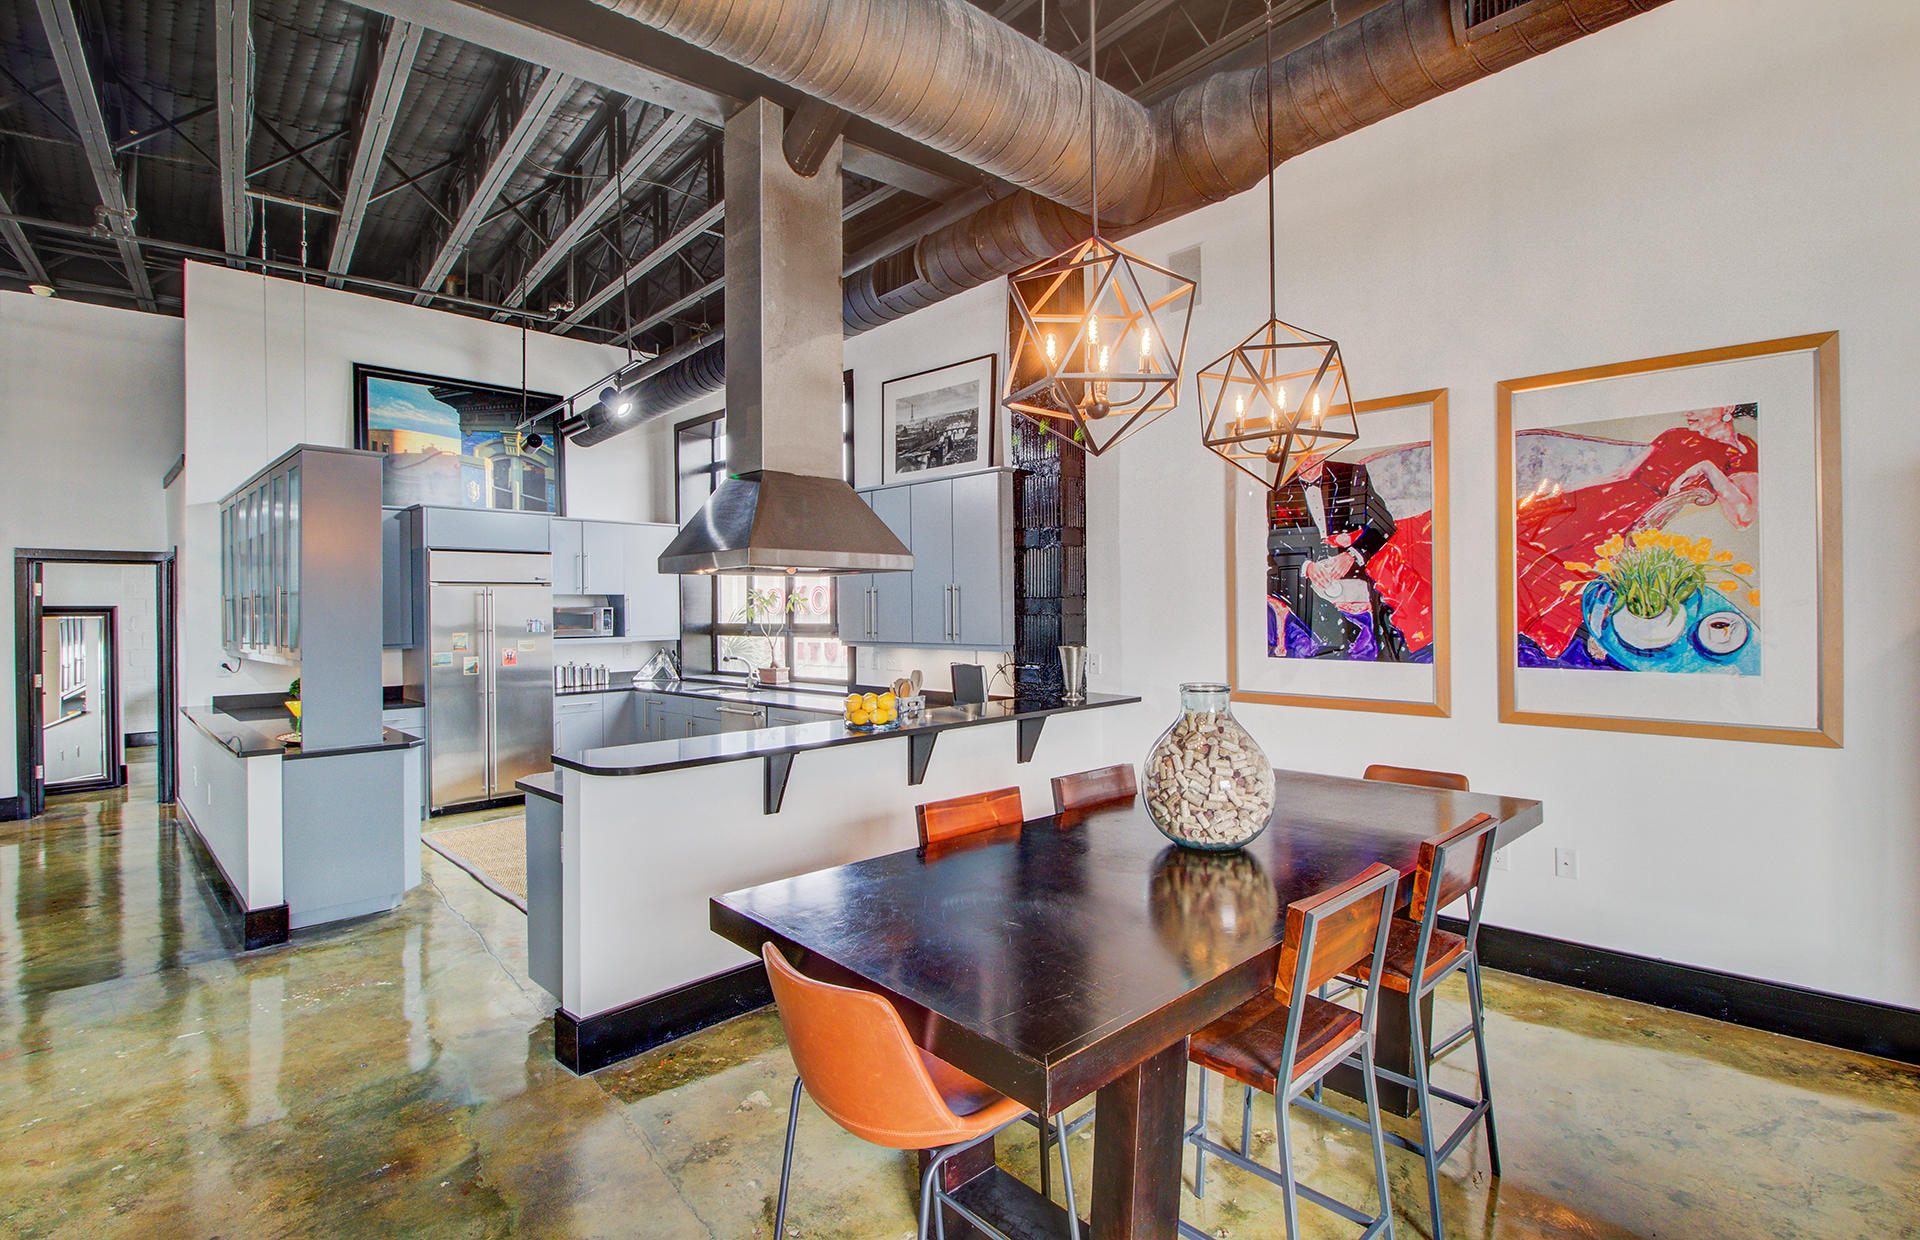 King Street Lofts Homes For Sale - 517 King, Charleston, SC - 18